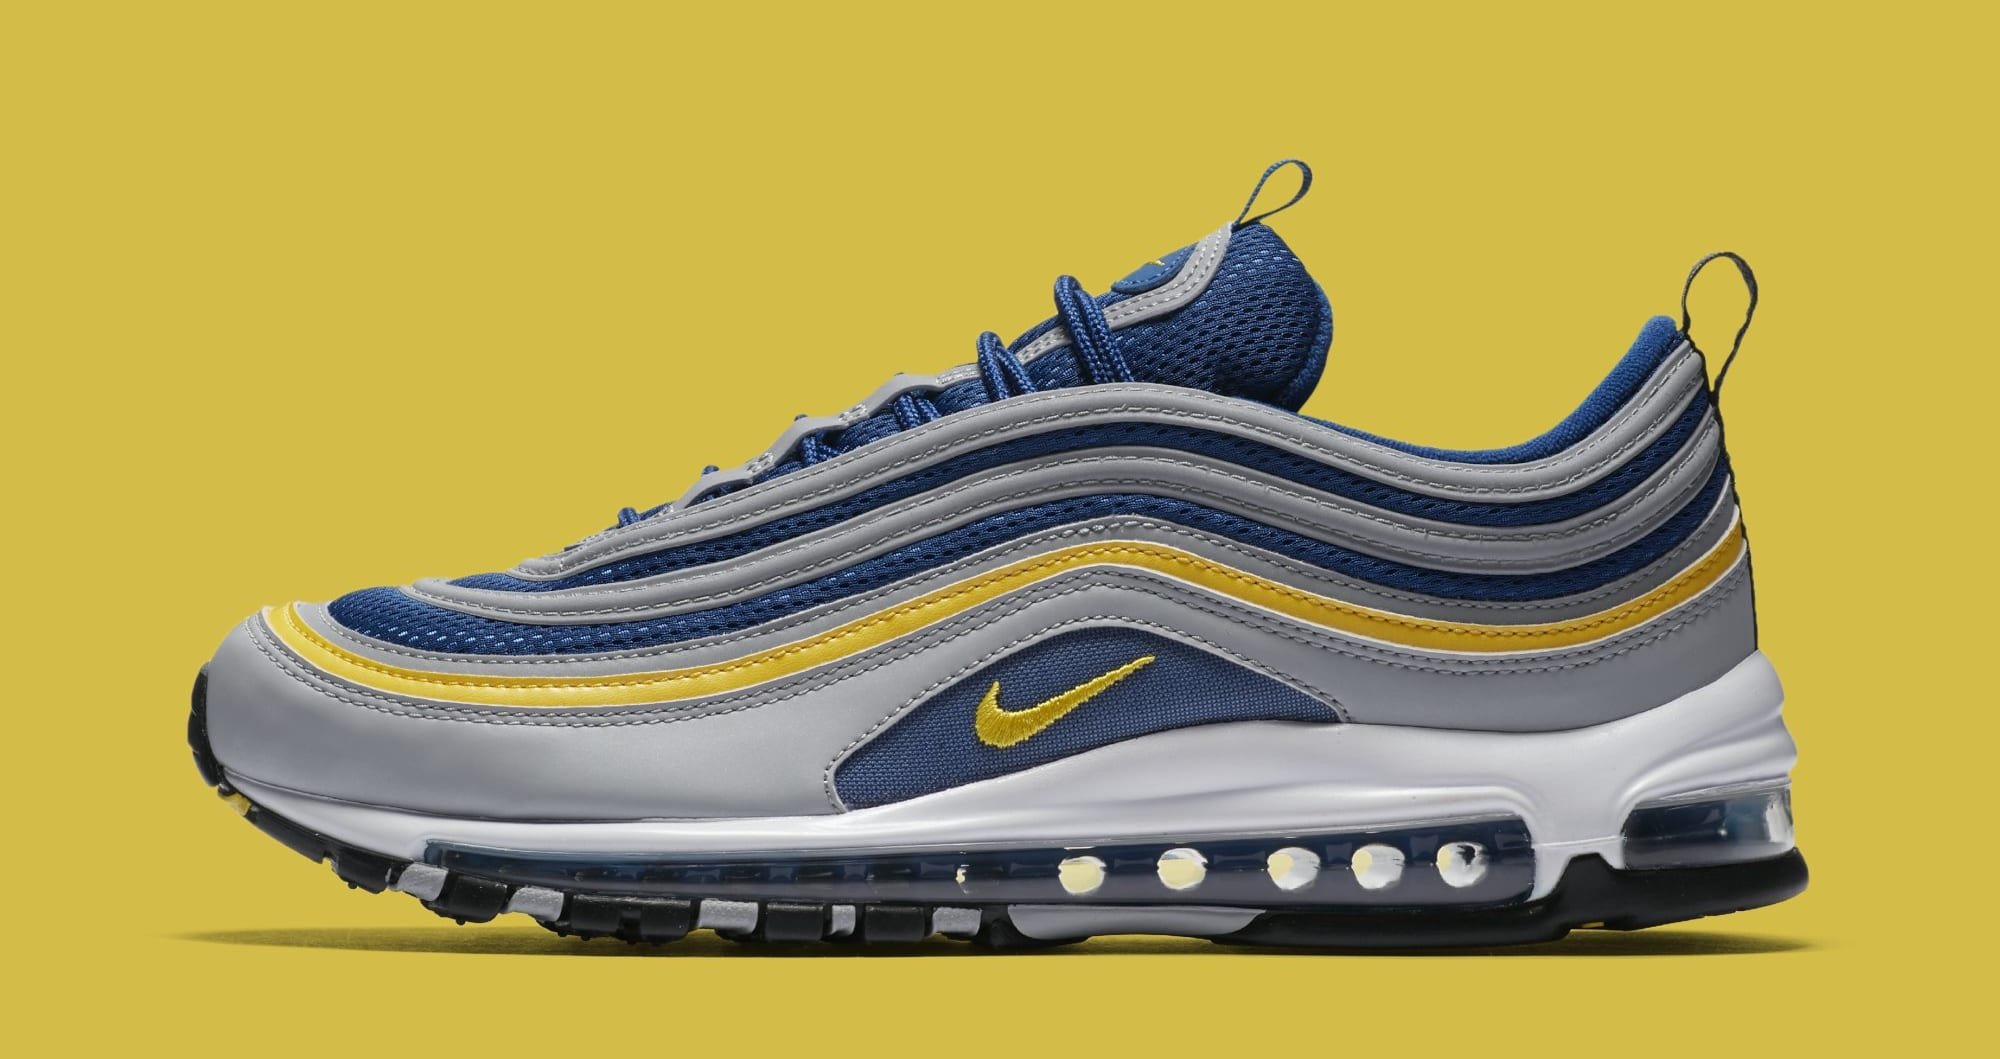 Nike Air Max 97 'Wolf Grey/Tour Yellow/Gym Blue' 921826-006 (Lateral)